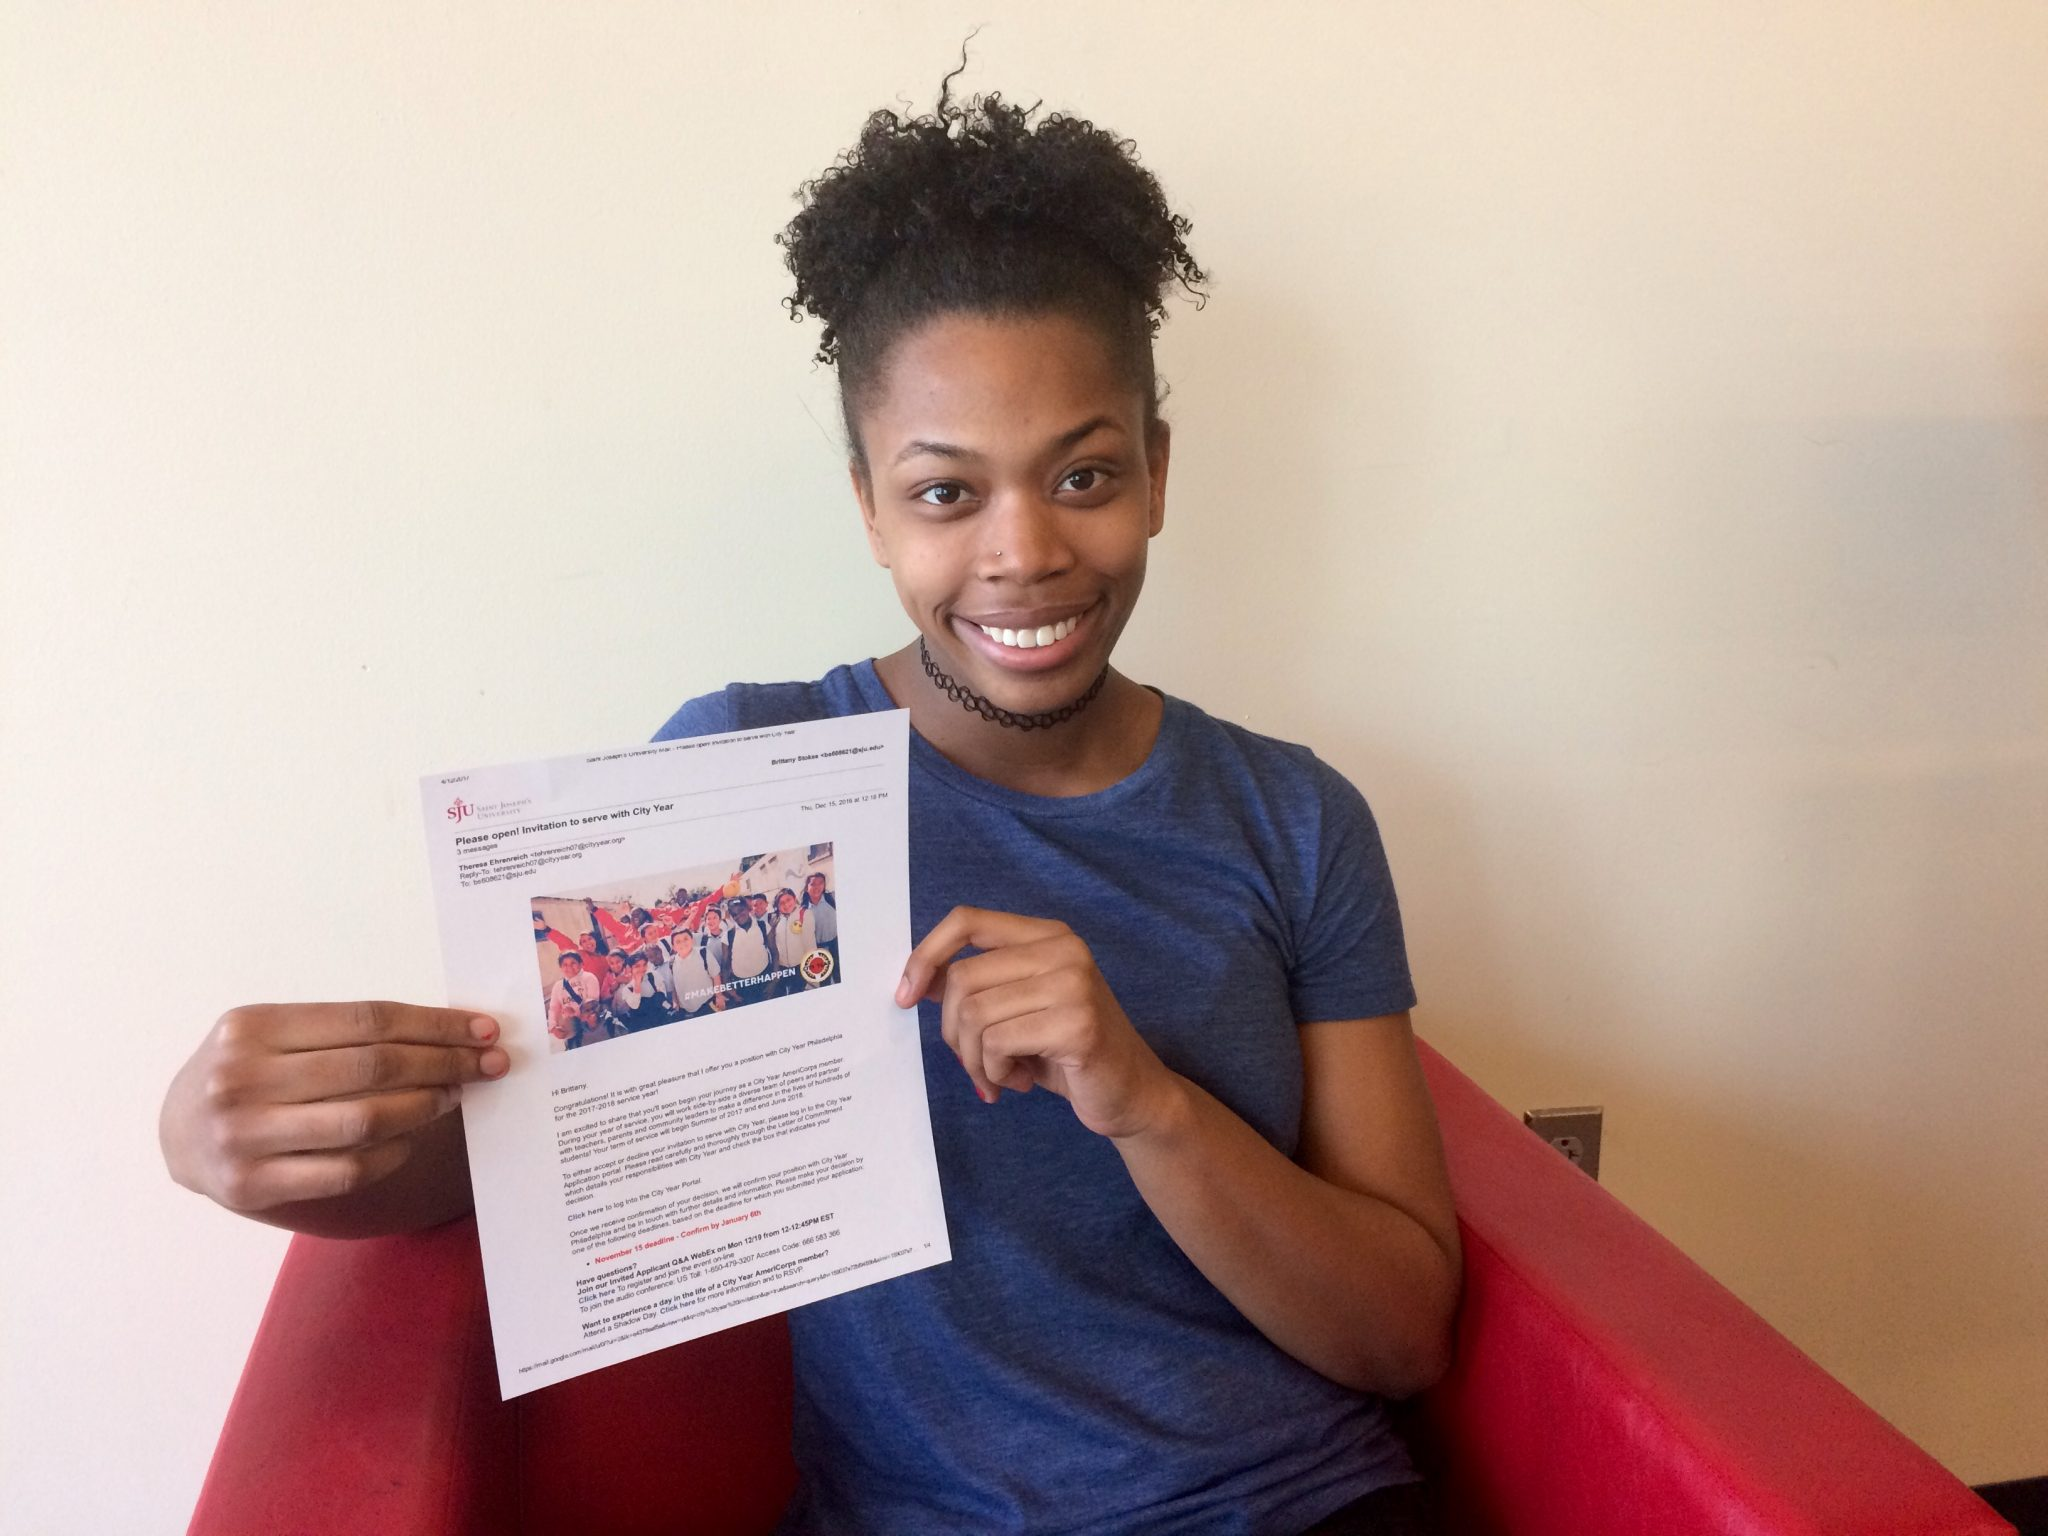 Brittany Stokes is sitting in a red chair, holding up her invitation to serve at City Year.